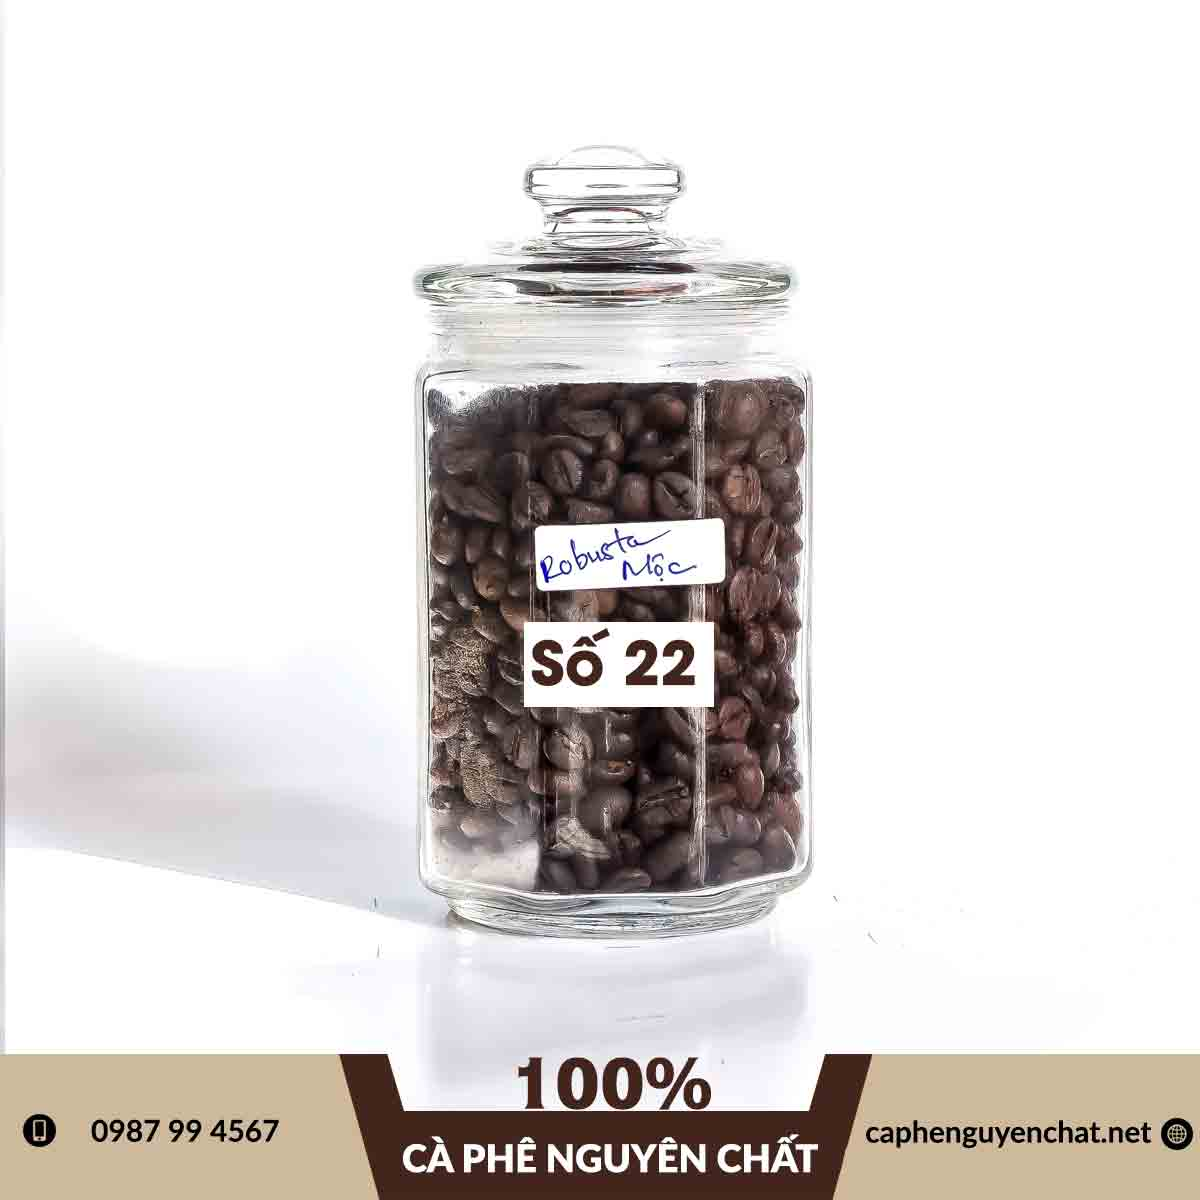 ca-phe-robusta-moc-so-22